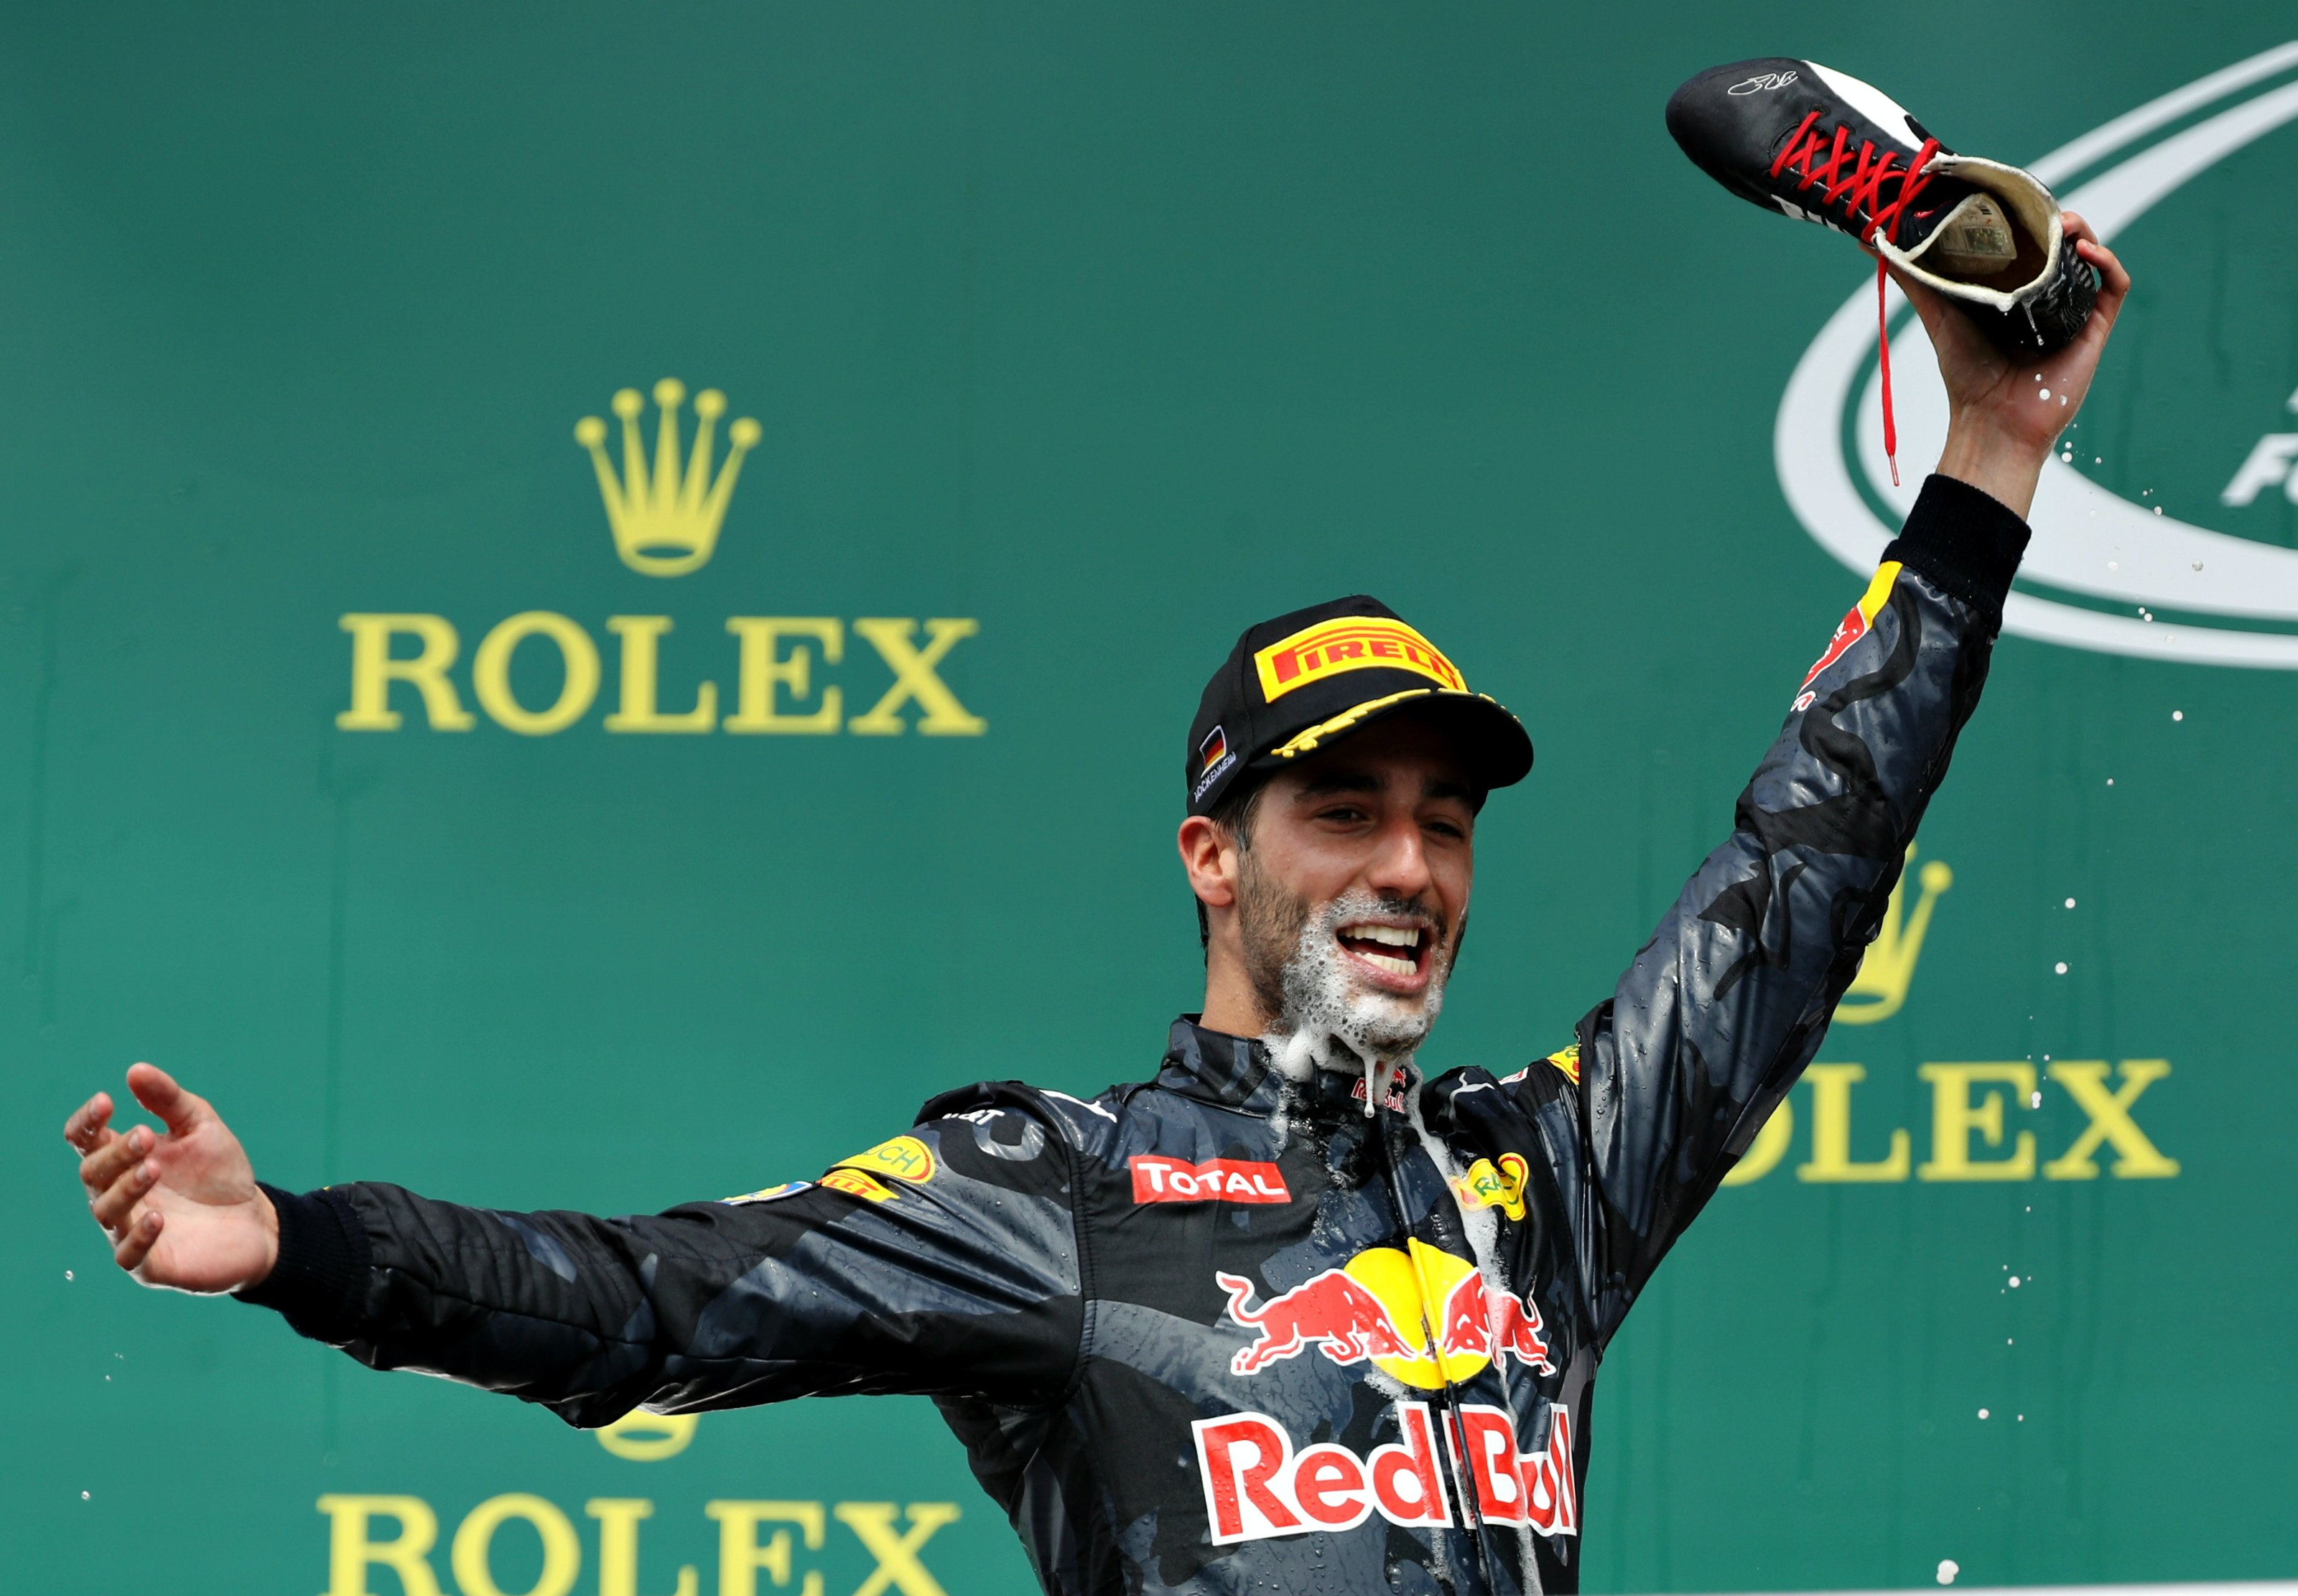 Danny Ricciardo of Red Bull on the podium at the 2016 German Grand Prix